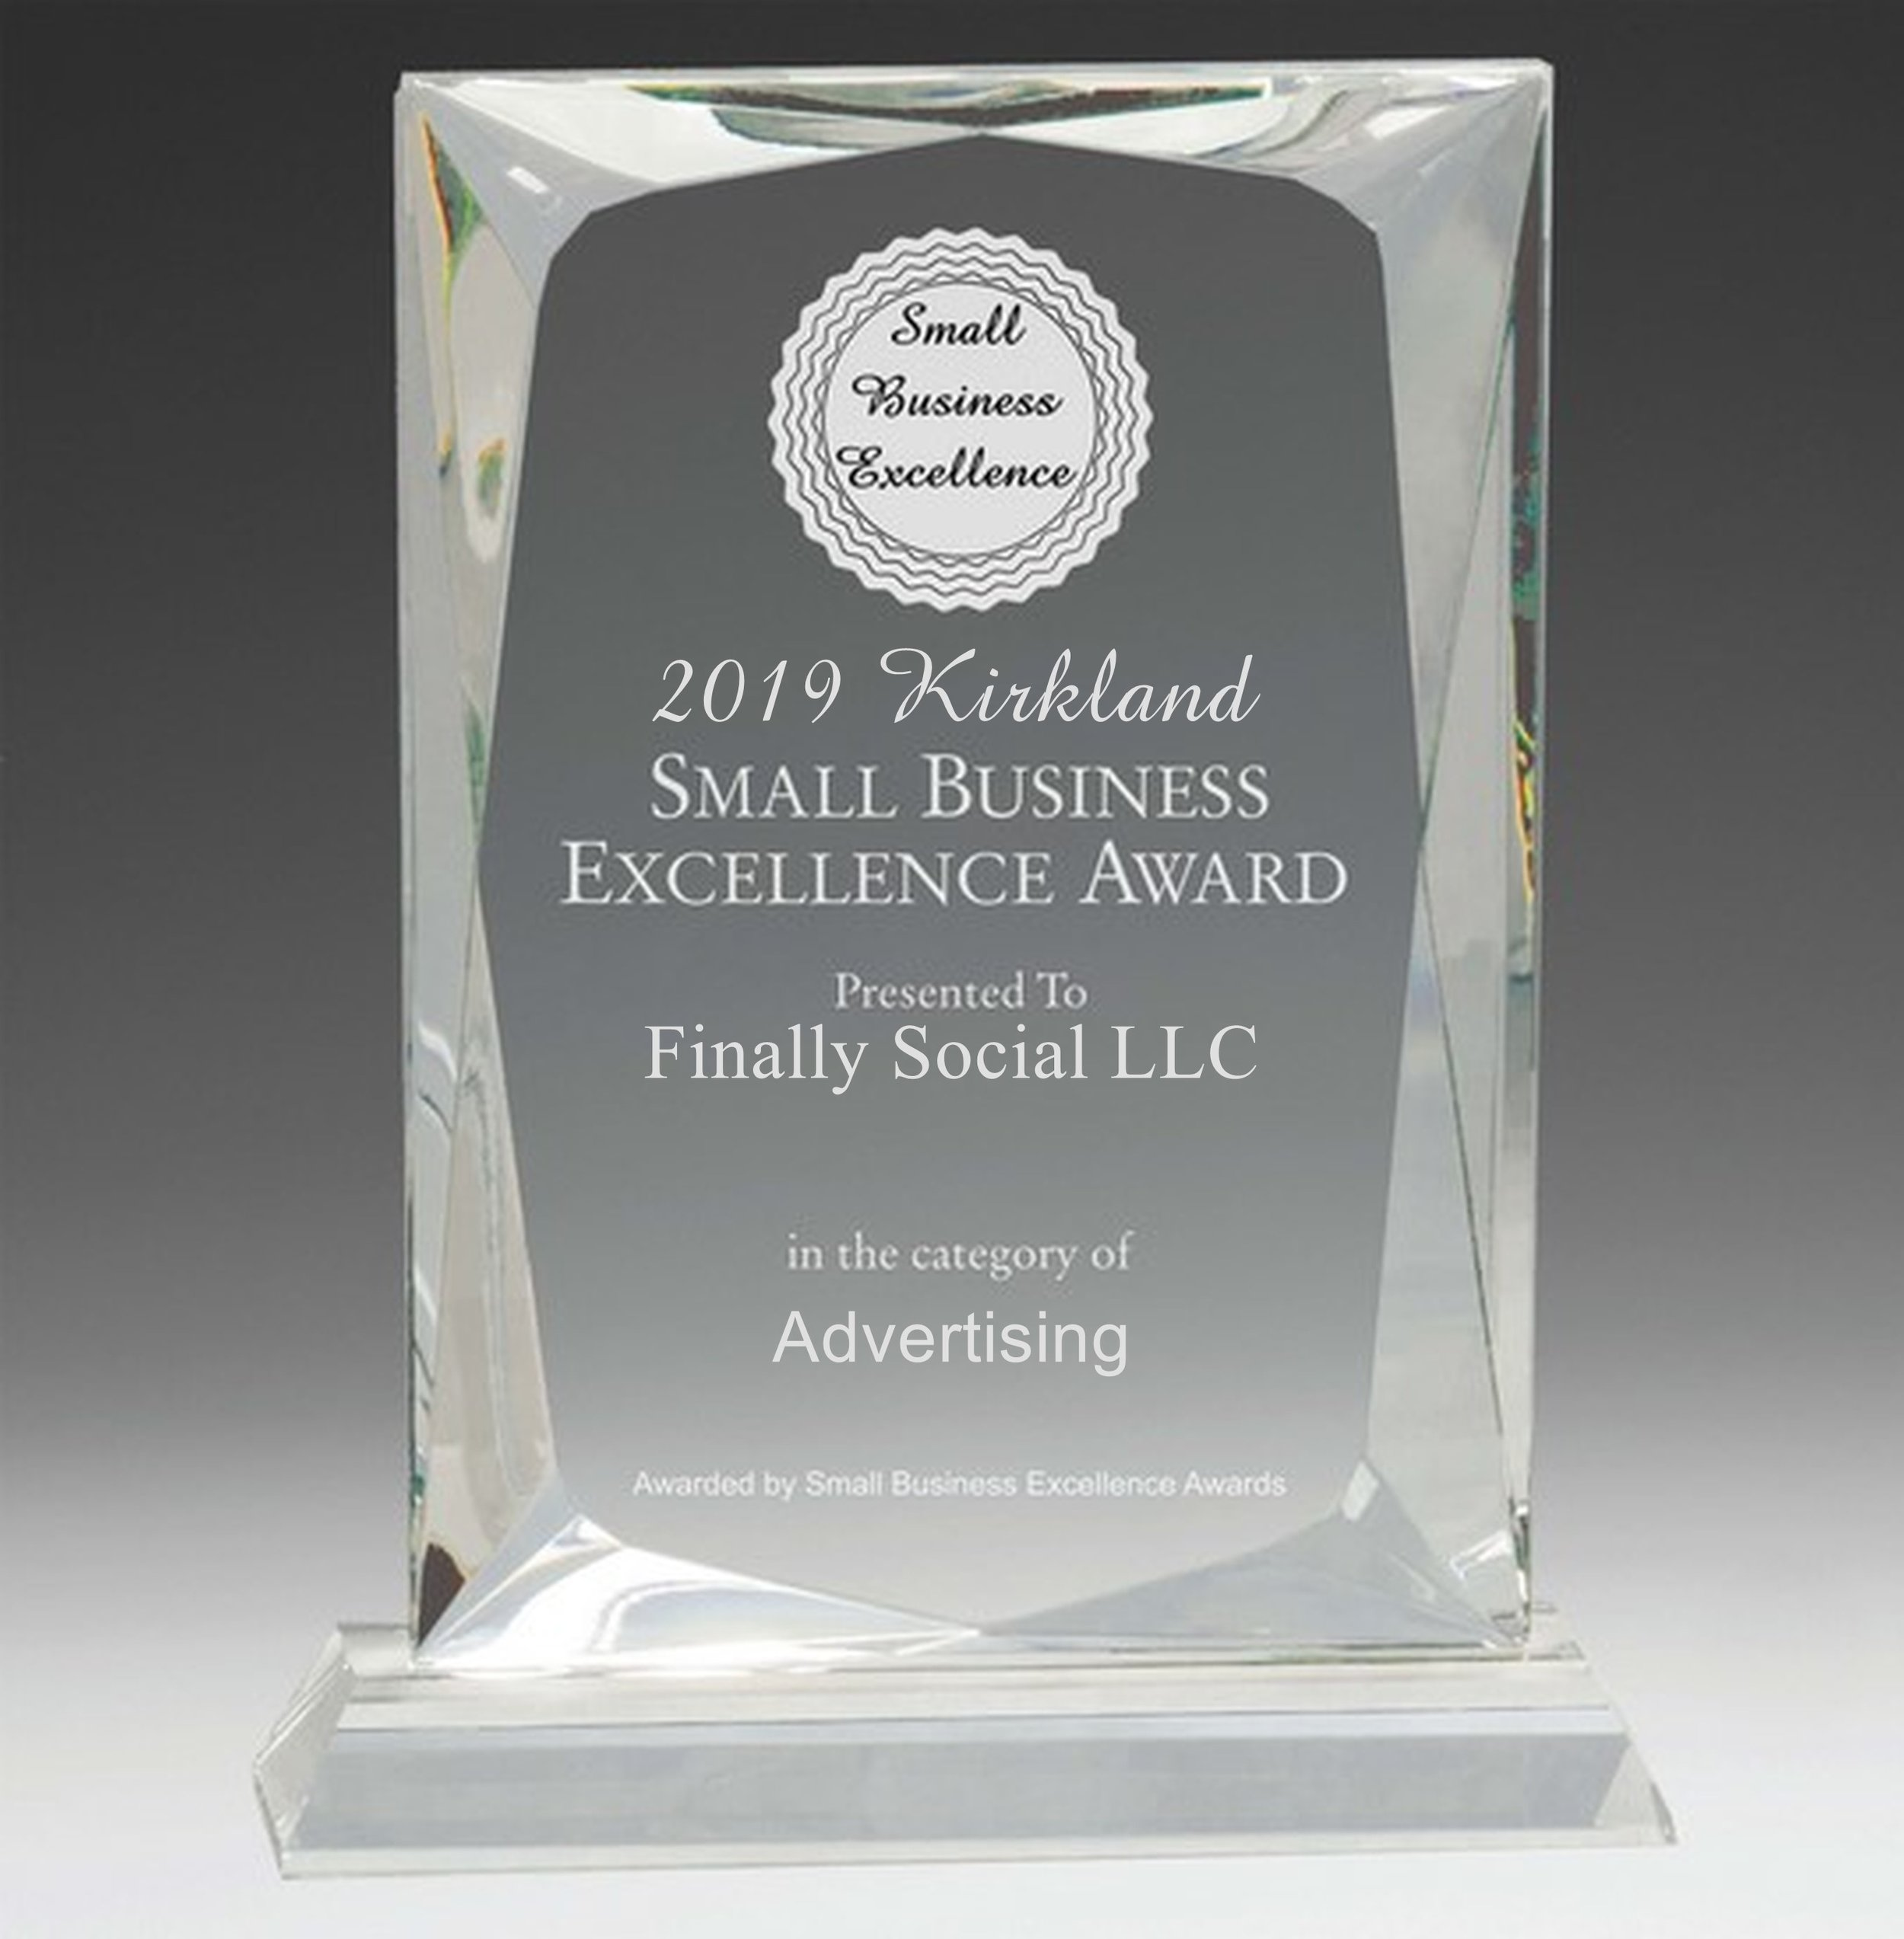 Finally Social LLC selected for 2019 Kirkland Small Business Excellence Award.jpg